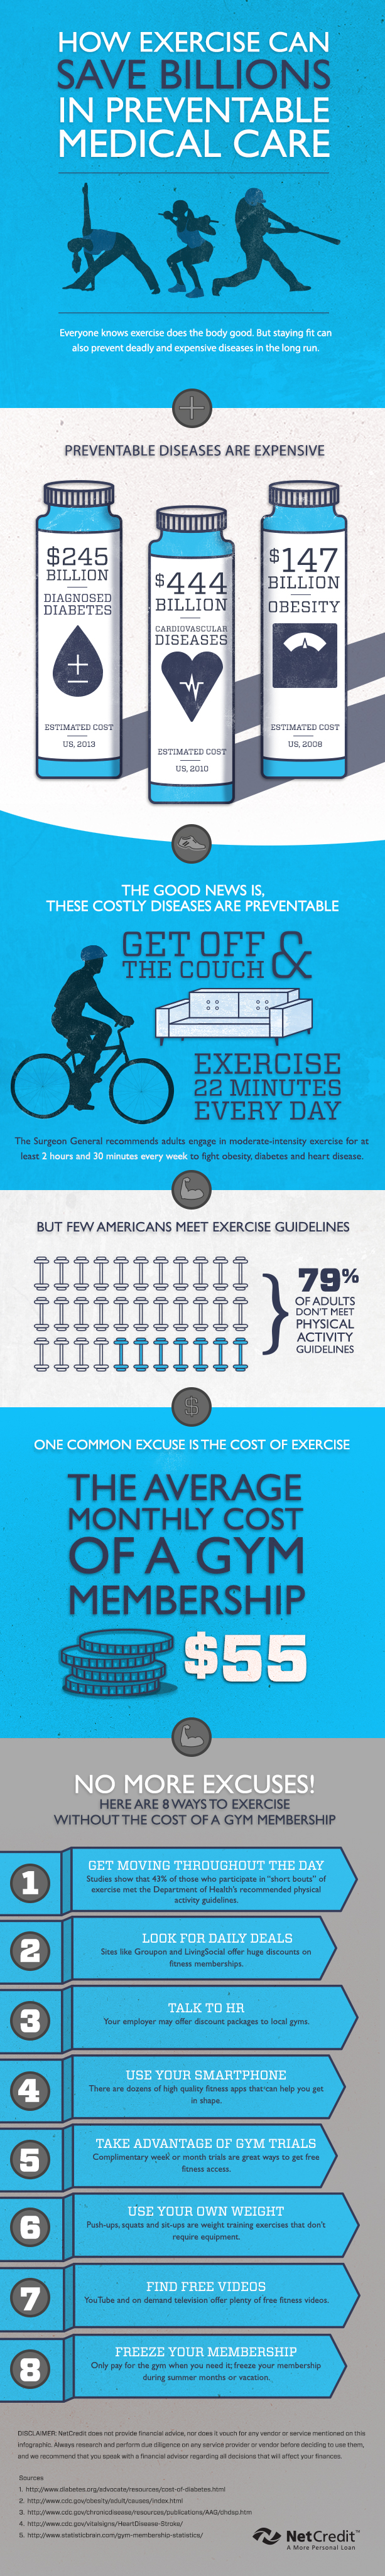 Everyone knows exercise does the body good. But staying fit can also prevent deadly and expensive diseases in the long run.